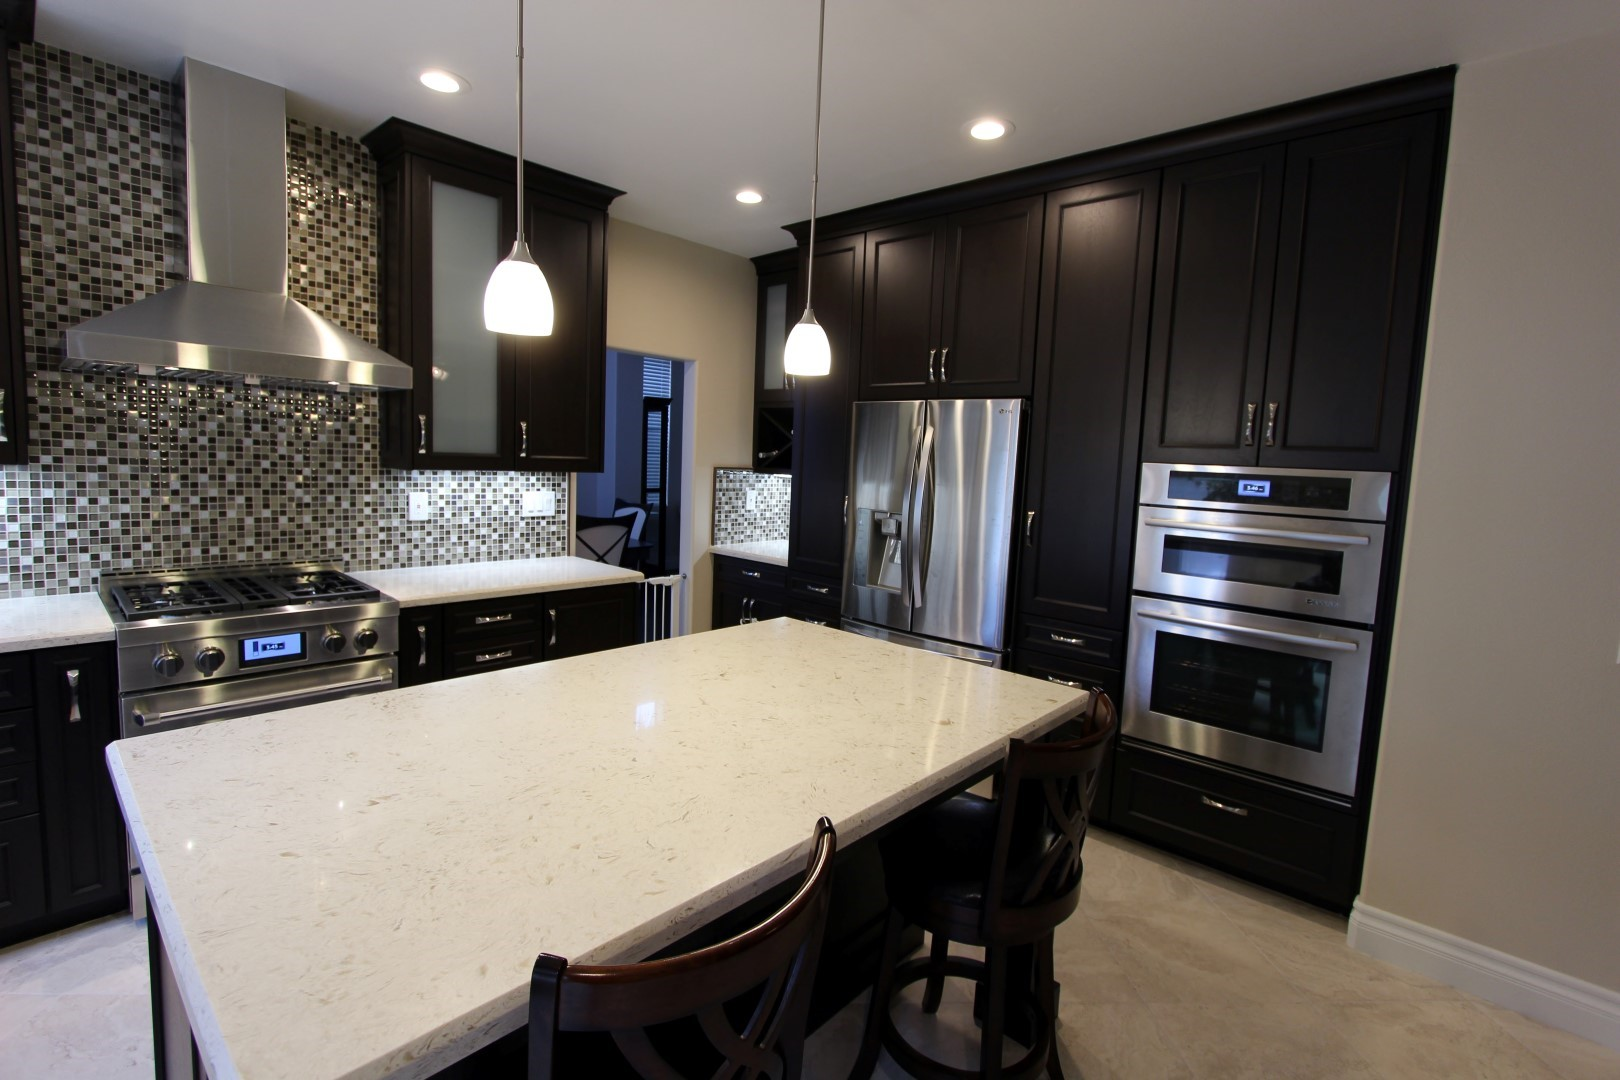 Akoya Install 1 credit to APlus Interior Design Remodeling